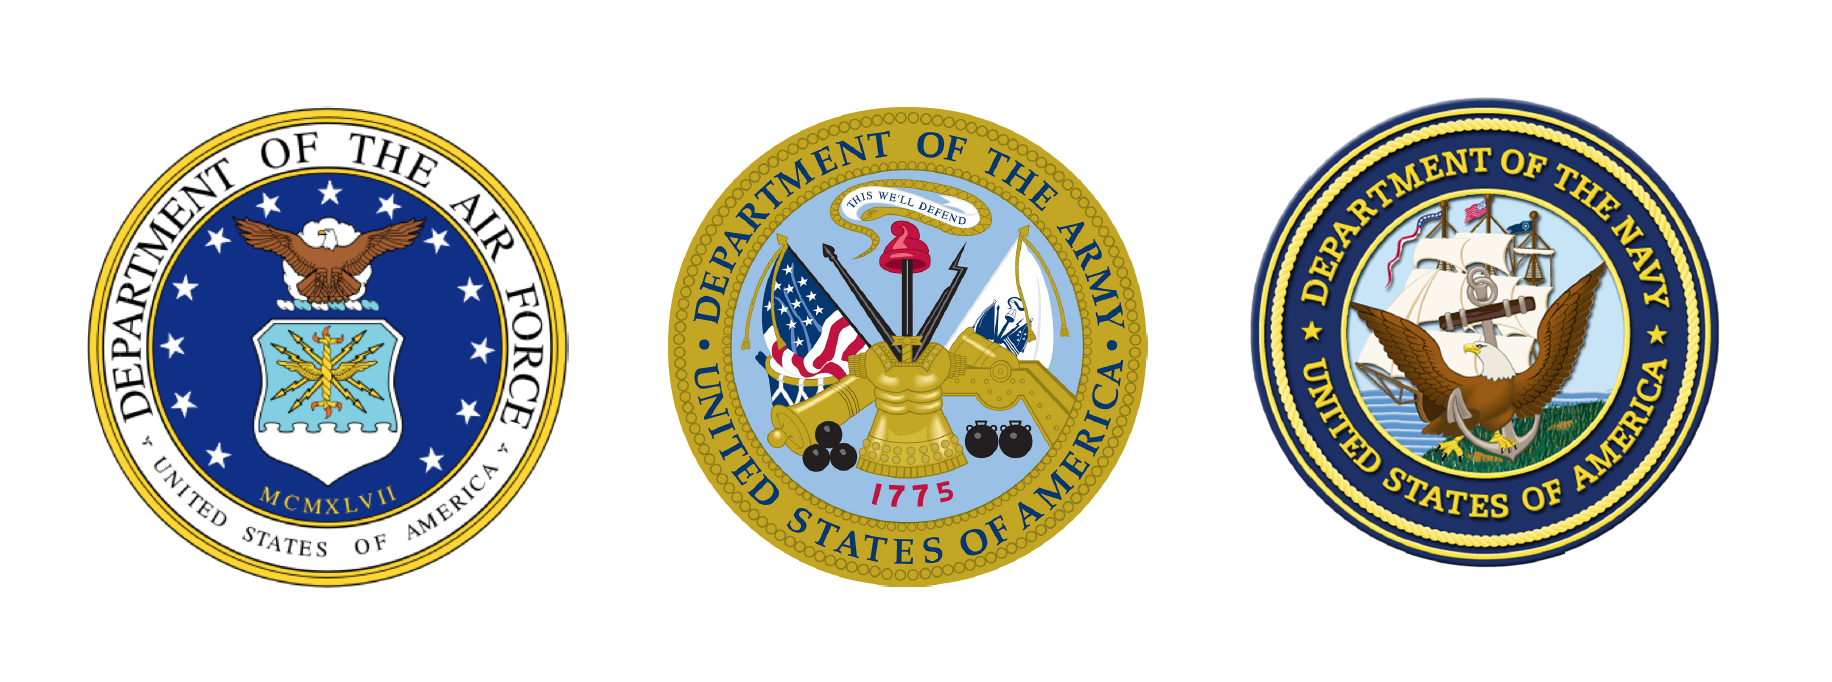 Department Of Navy Army And Air Force Announce 2017 Bank Of The